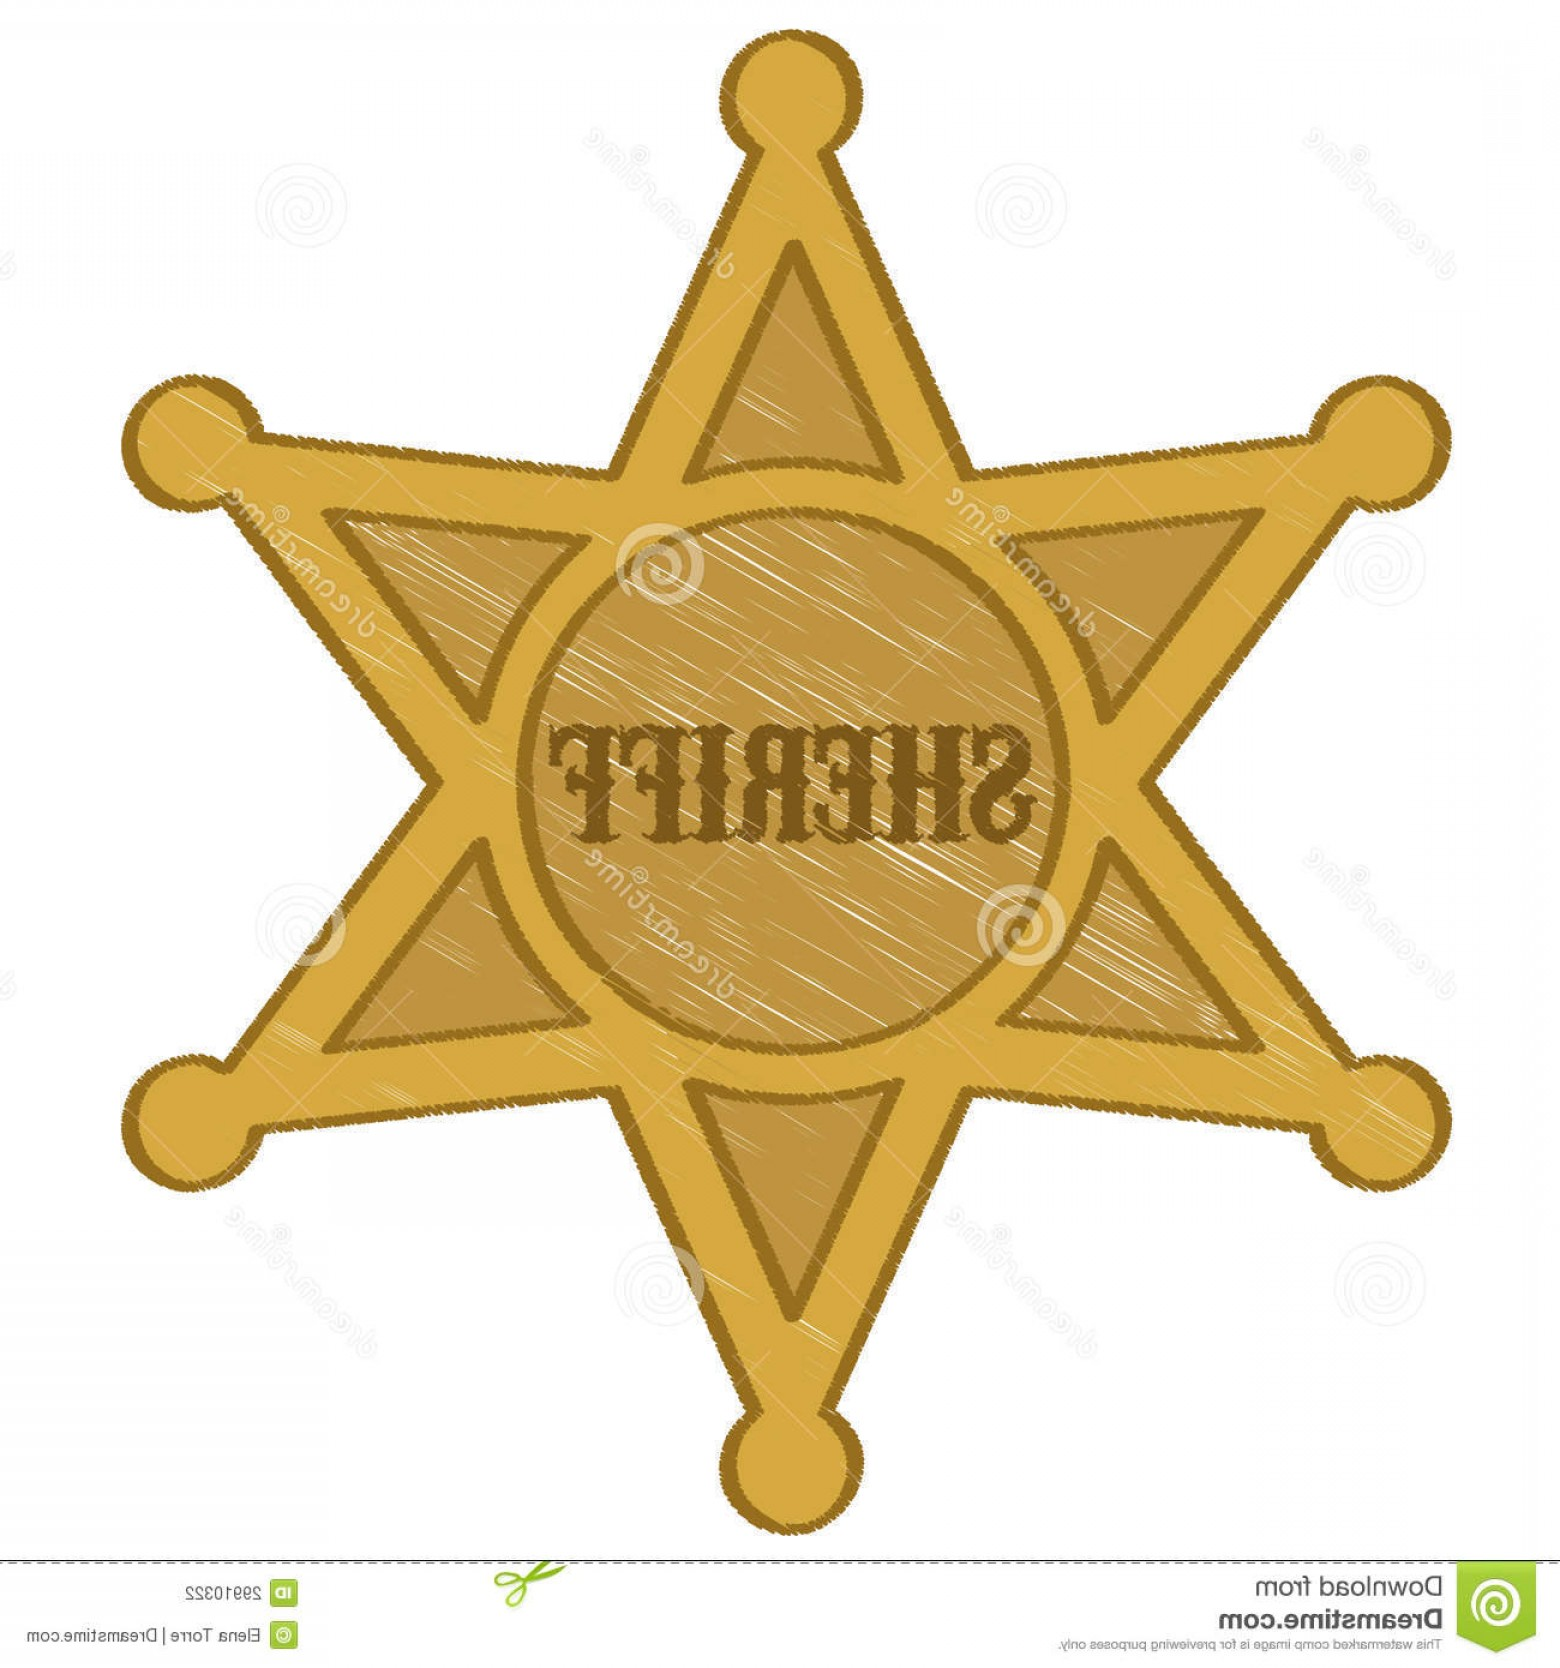 Star Badge Vector: Stock Photography Illustration Gold Sheriff Star White Background Image